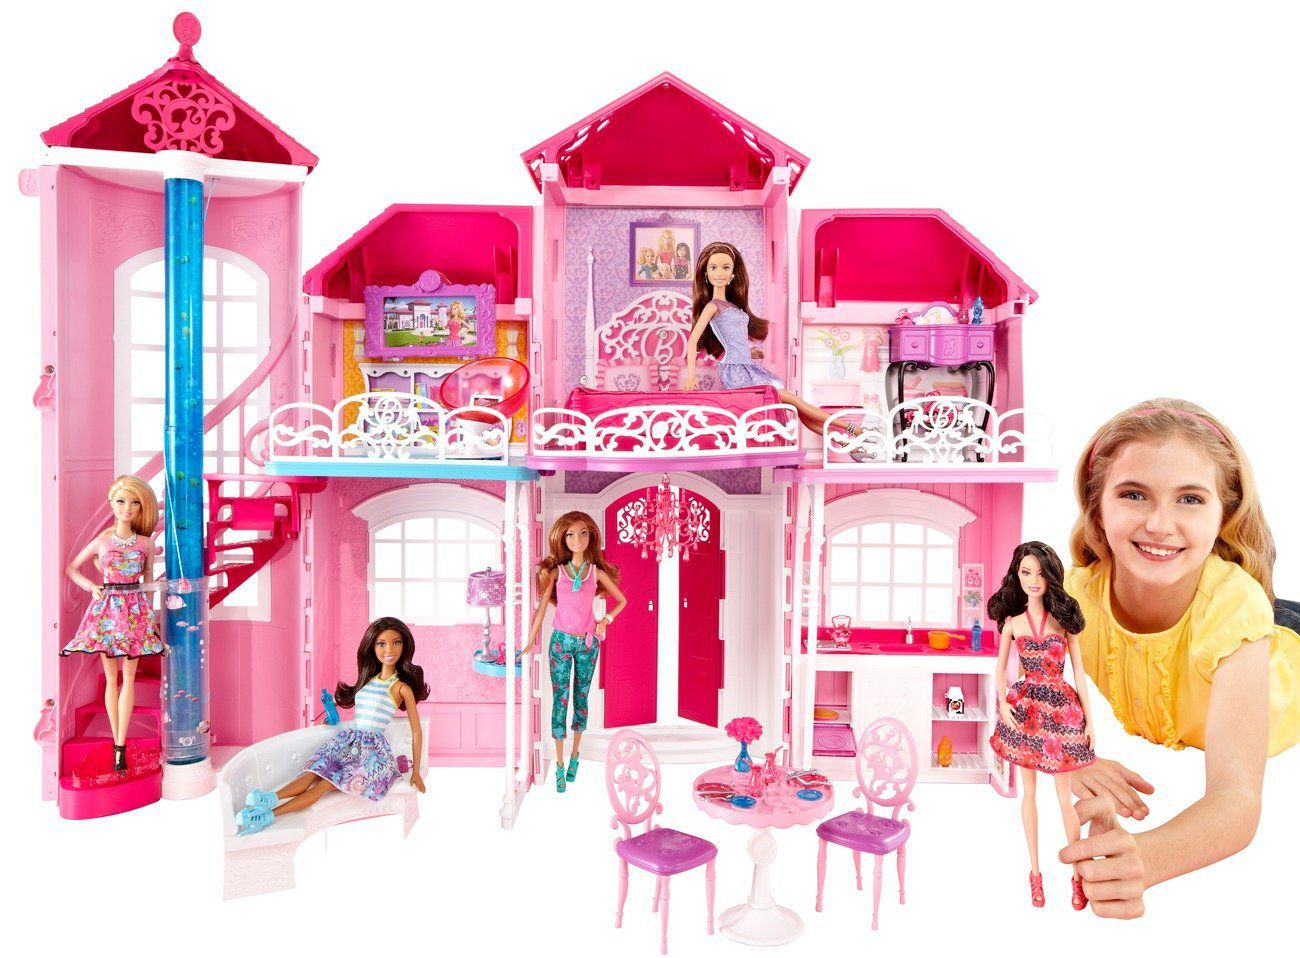 barbie la nouvelle maison achat vente maison poup e. Black Bedroom Furniture Sets. Home Design Ideas